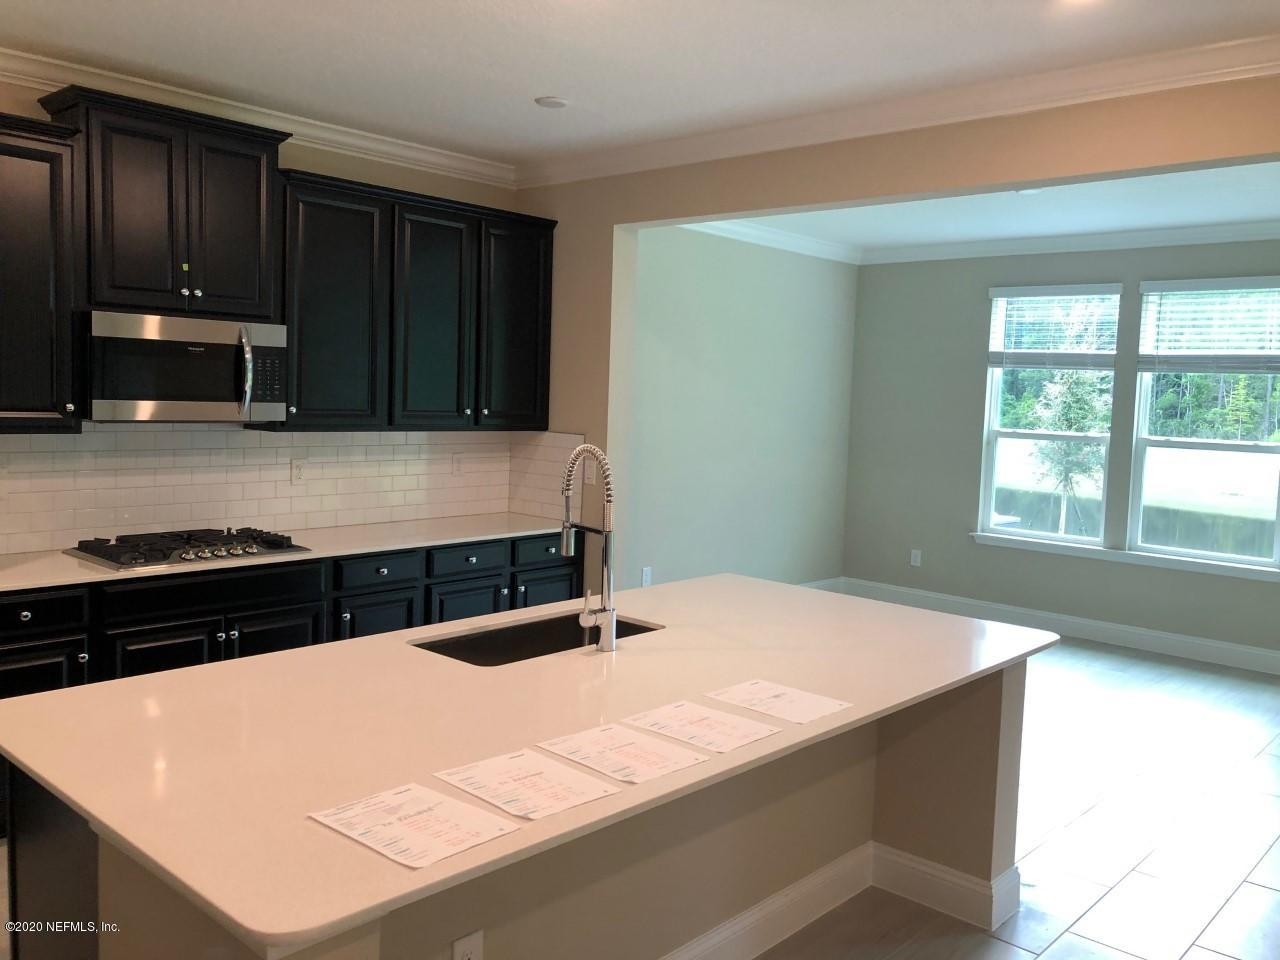 271 LATROBE, ST AUGUSTINE, FLORIDA 32095, 4 Bedrooms Bedrooms, ,3 BathroomsBathrooms,Residential,For sale,LATROBE,1081910